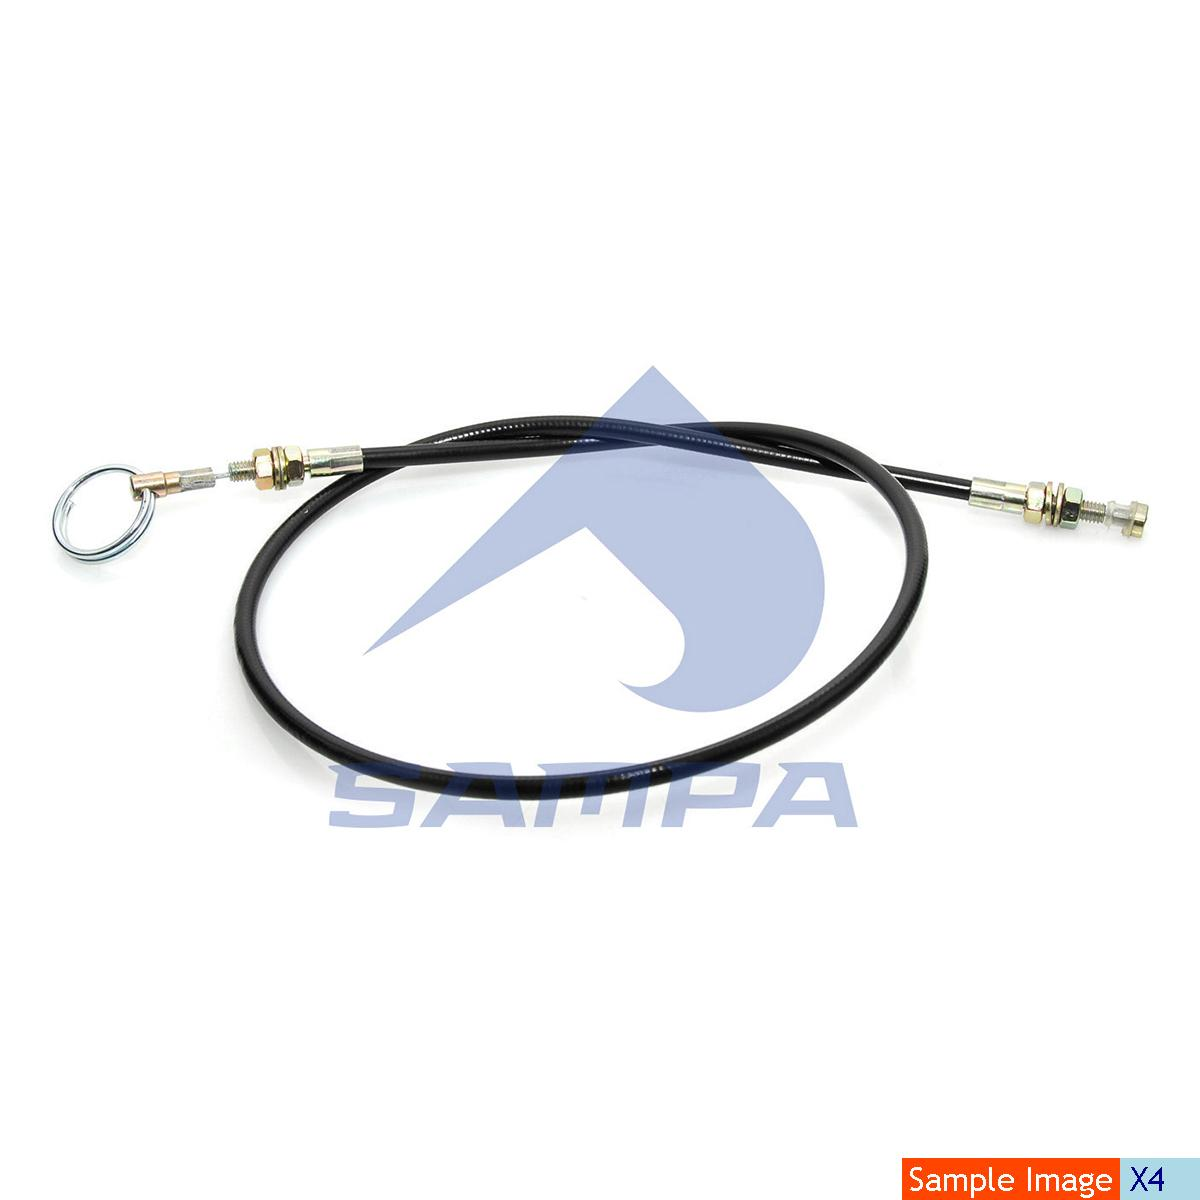 Cable, Front Panel Lock, Mercedes, Cab